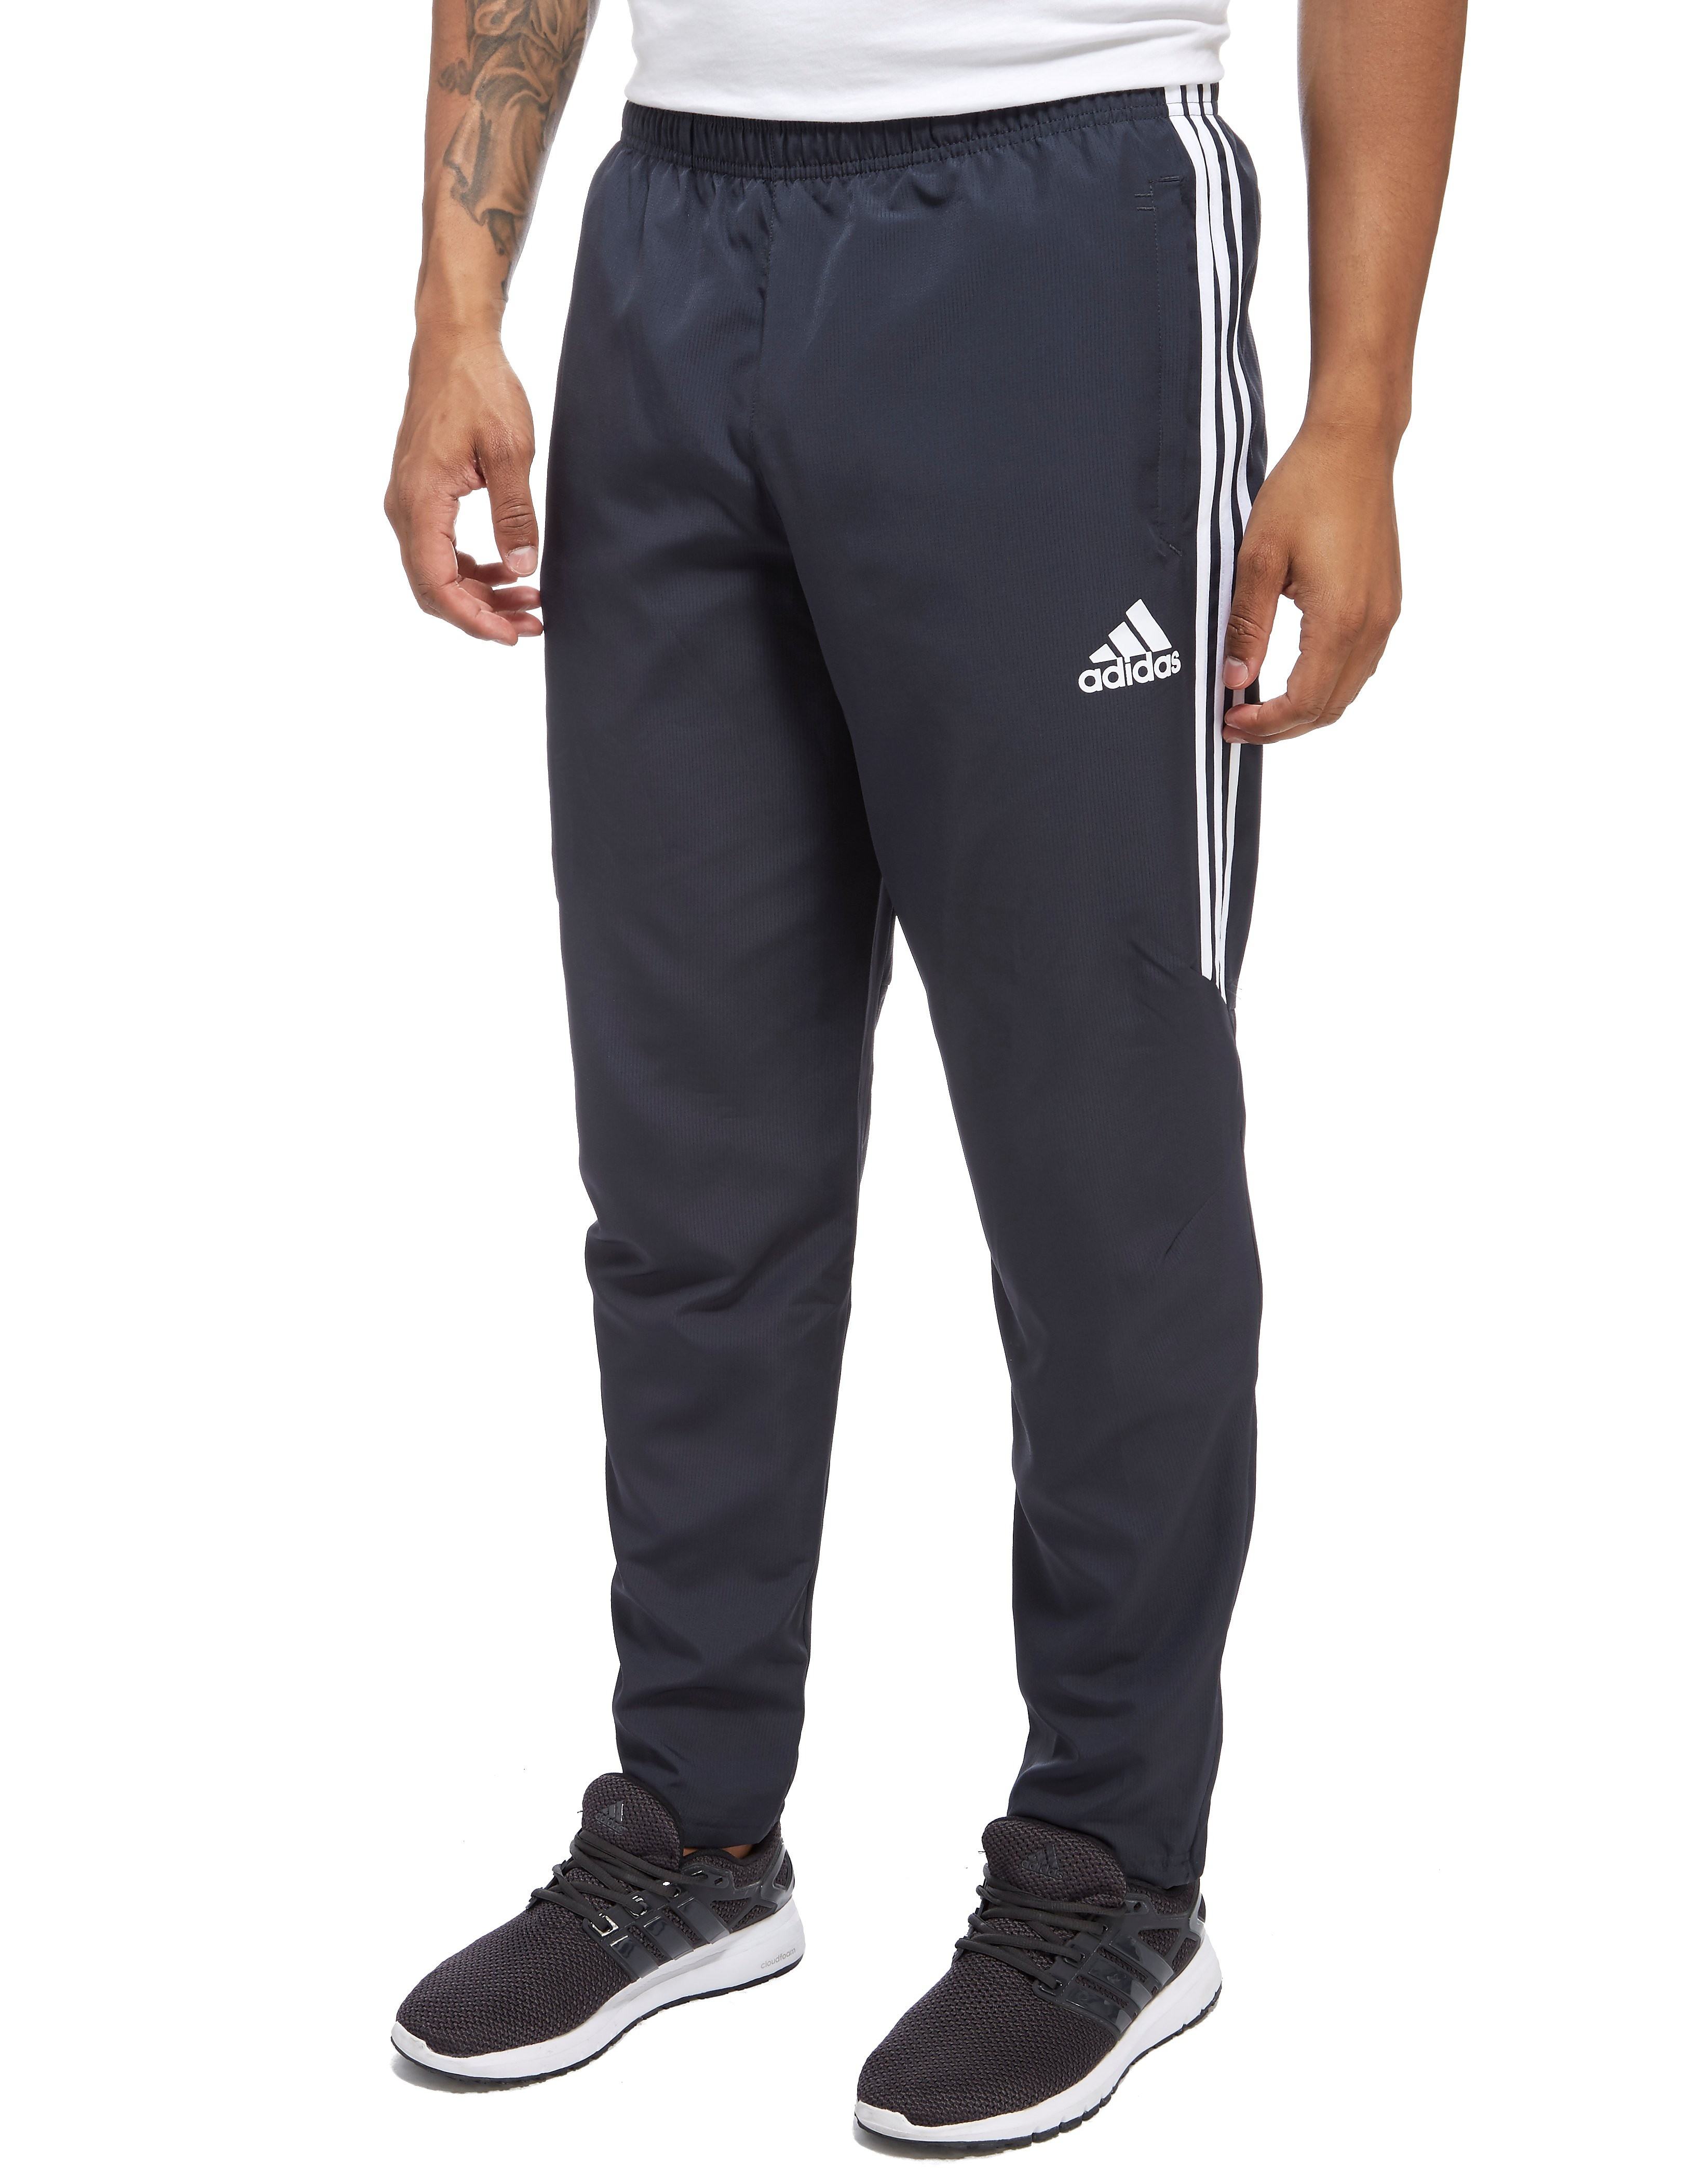 adidas Manchester United 2017 Presentation Pants